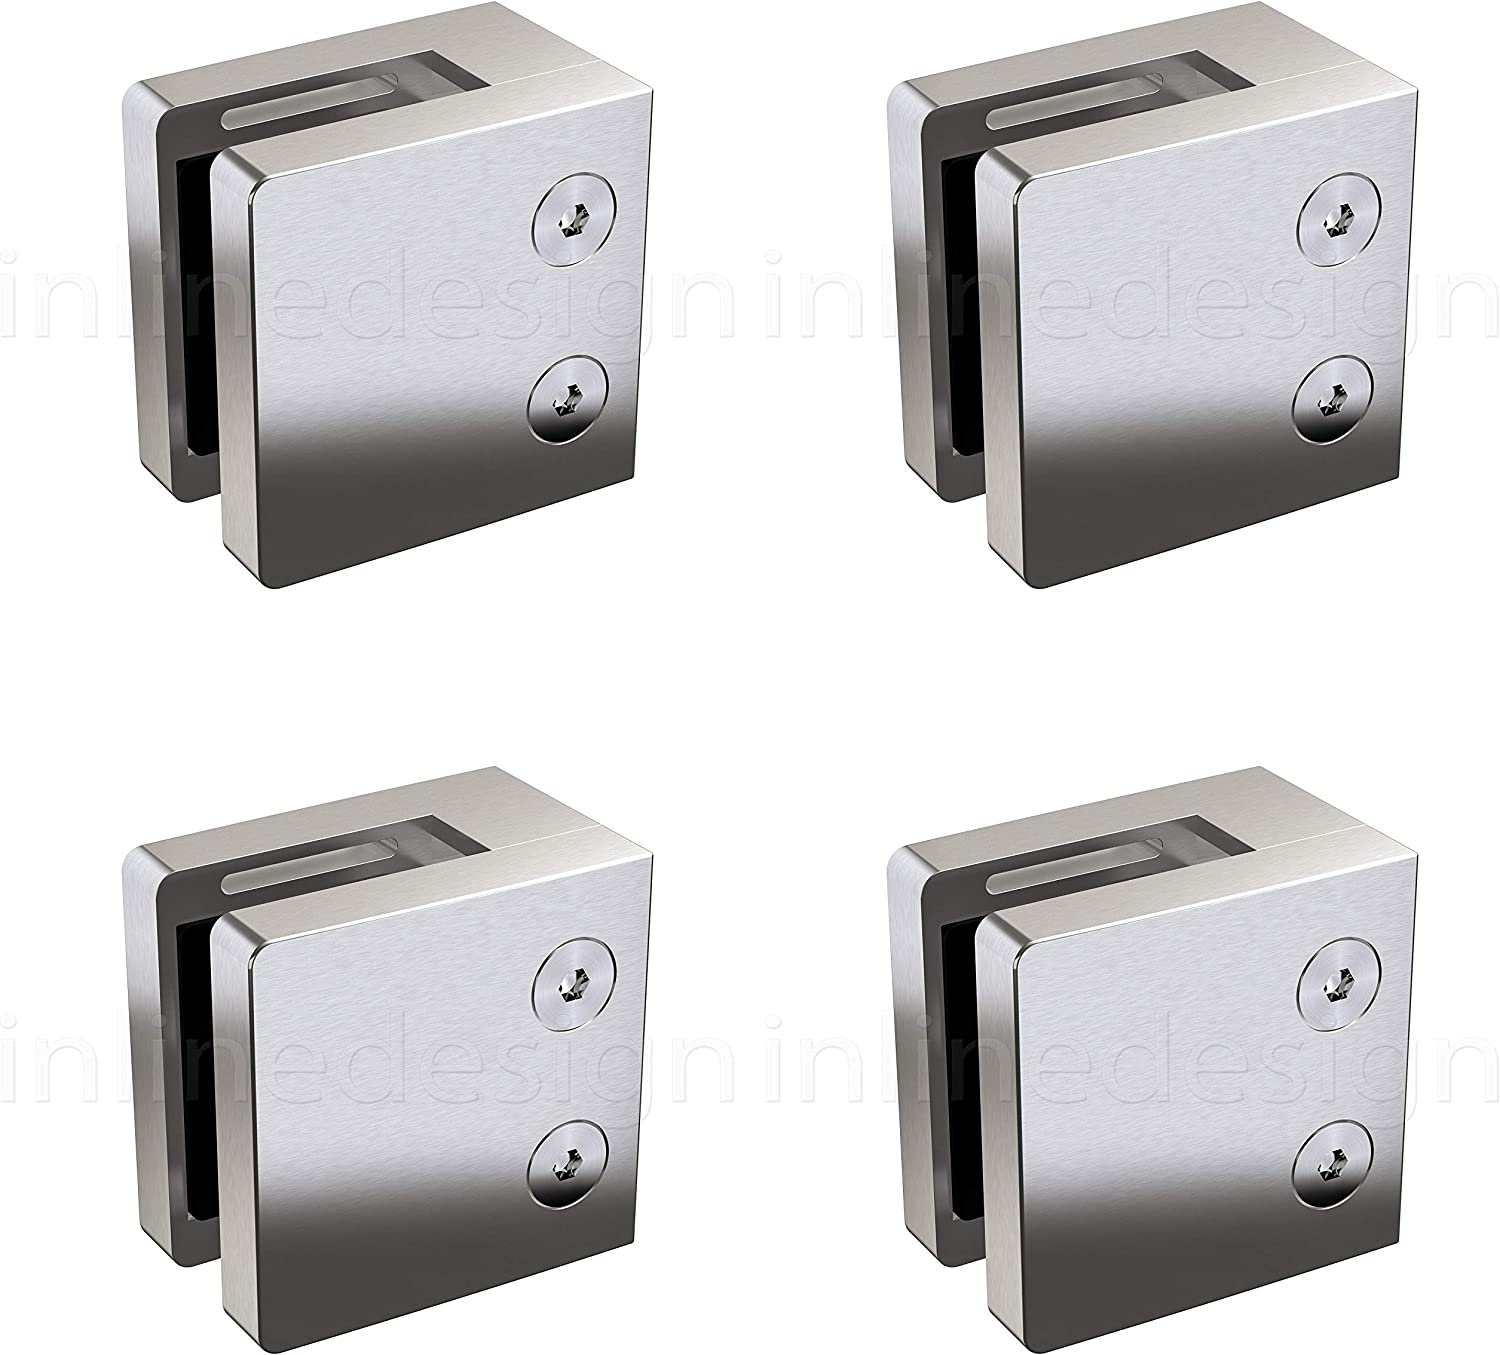 """4 x Large 2.17"""" Square Glass Clamp for Flat Surface (Stainless Steel 316) by Inline Design"""